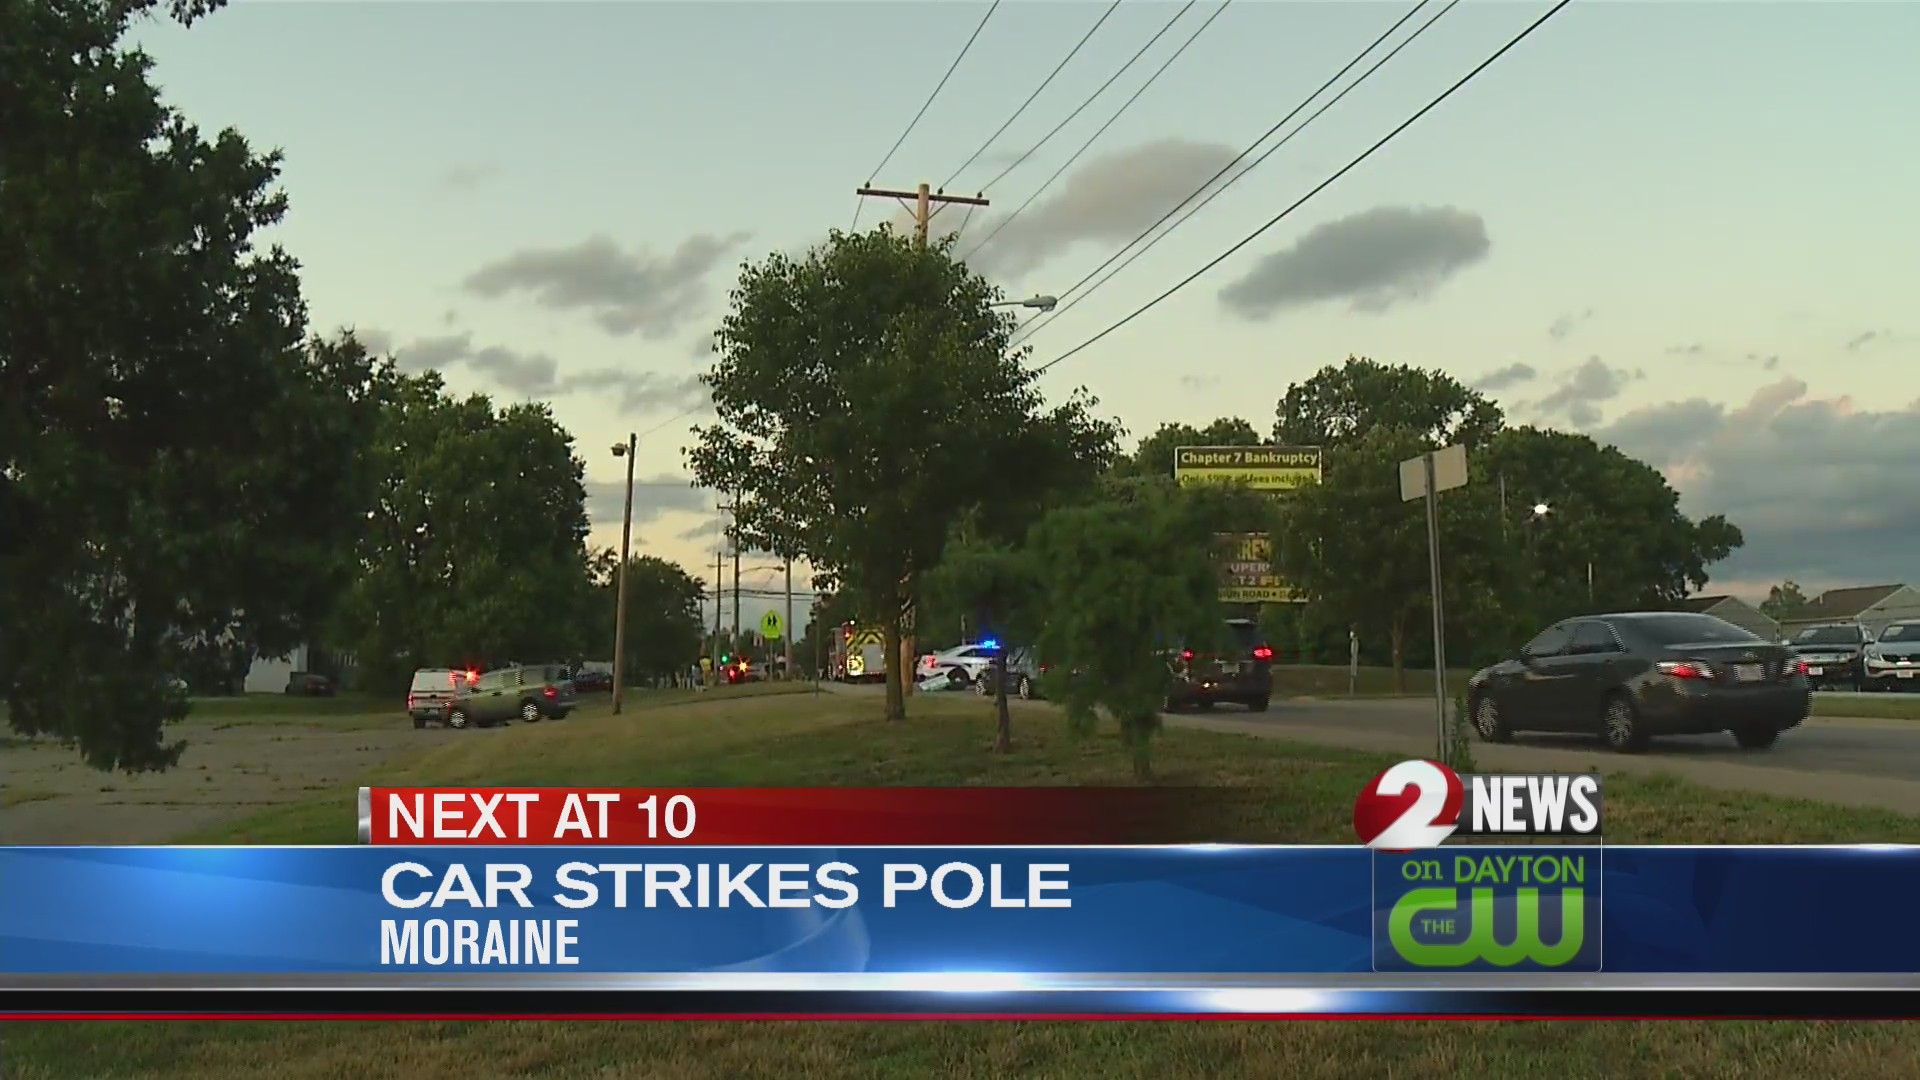 Car strikes pole in Moraine